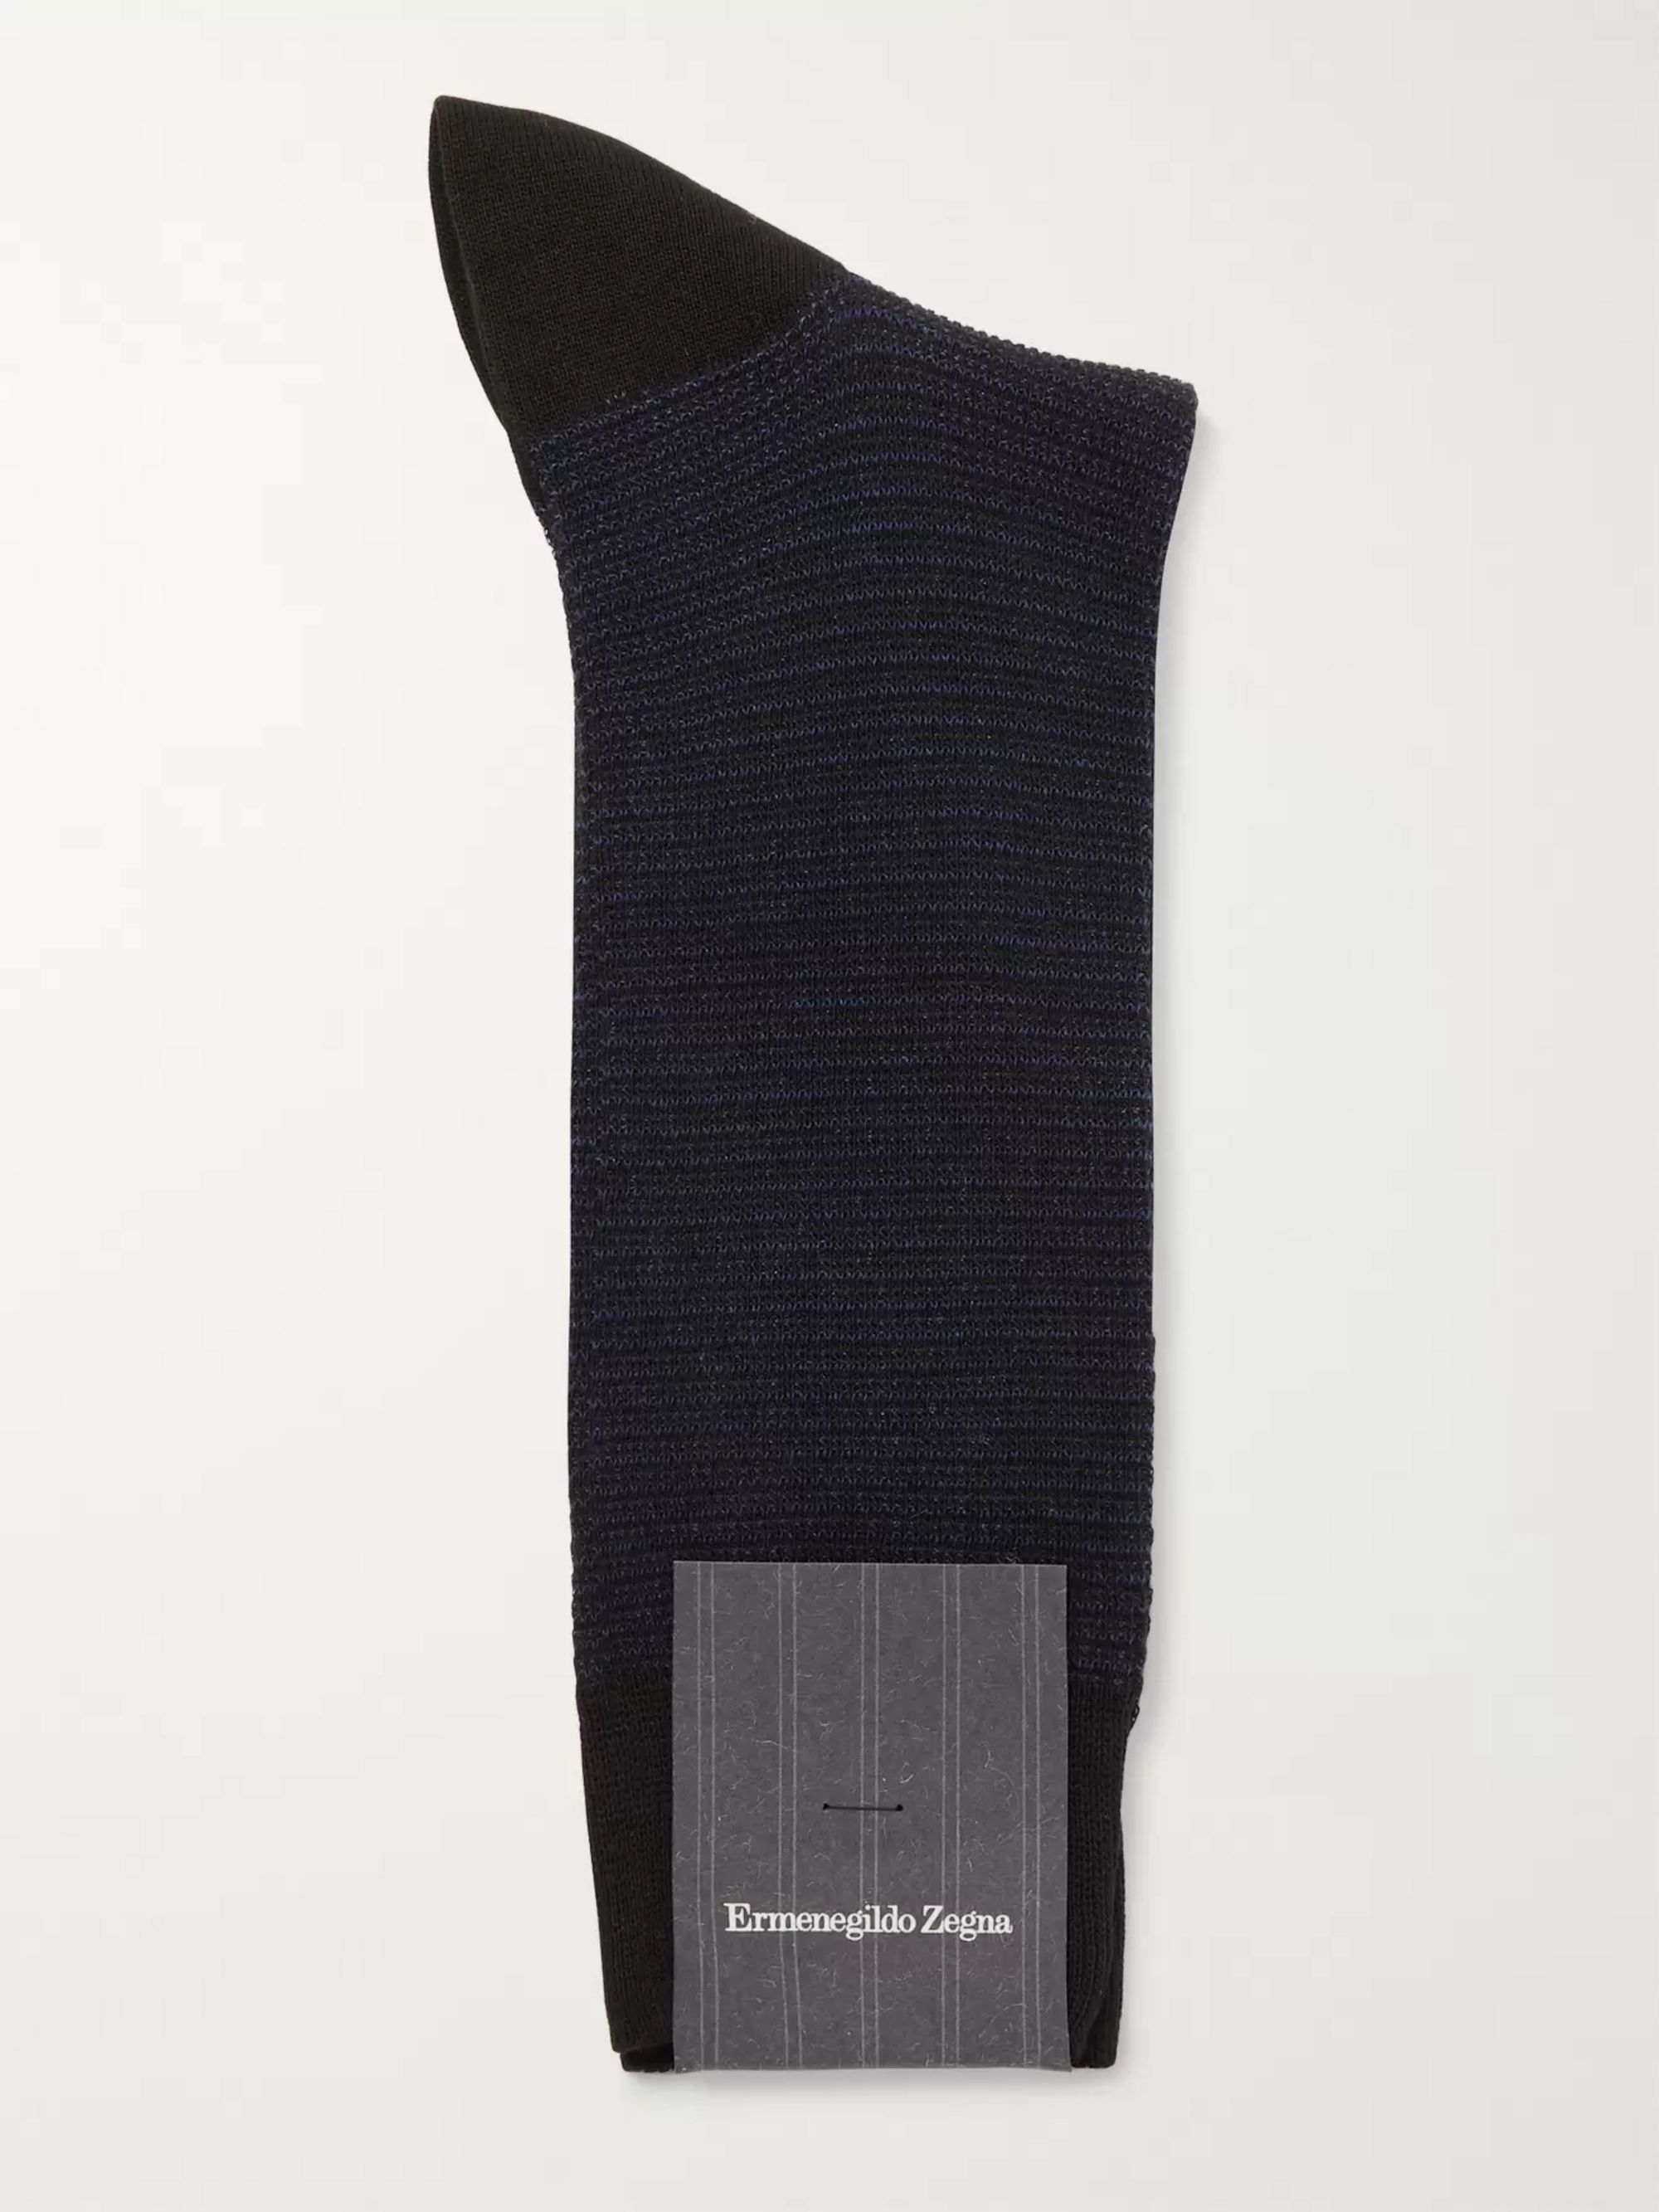 Ermenegildo Zegna Striped Stretch Cotton-Blend Socks